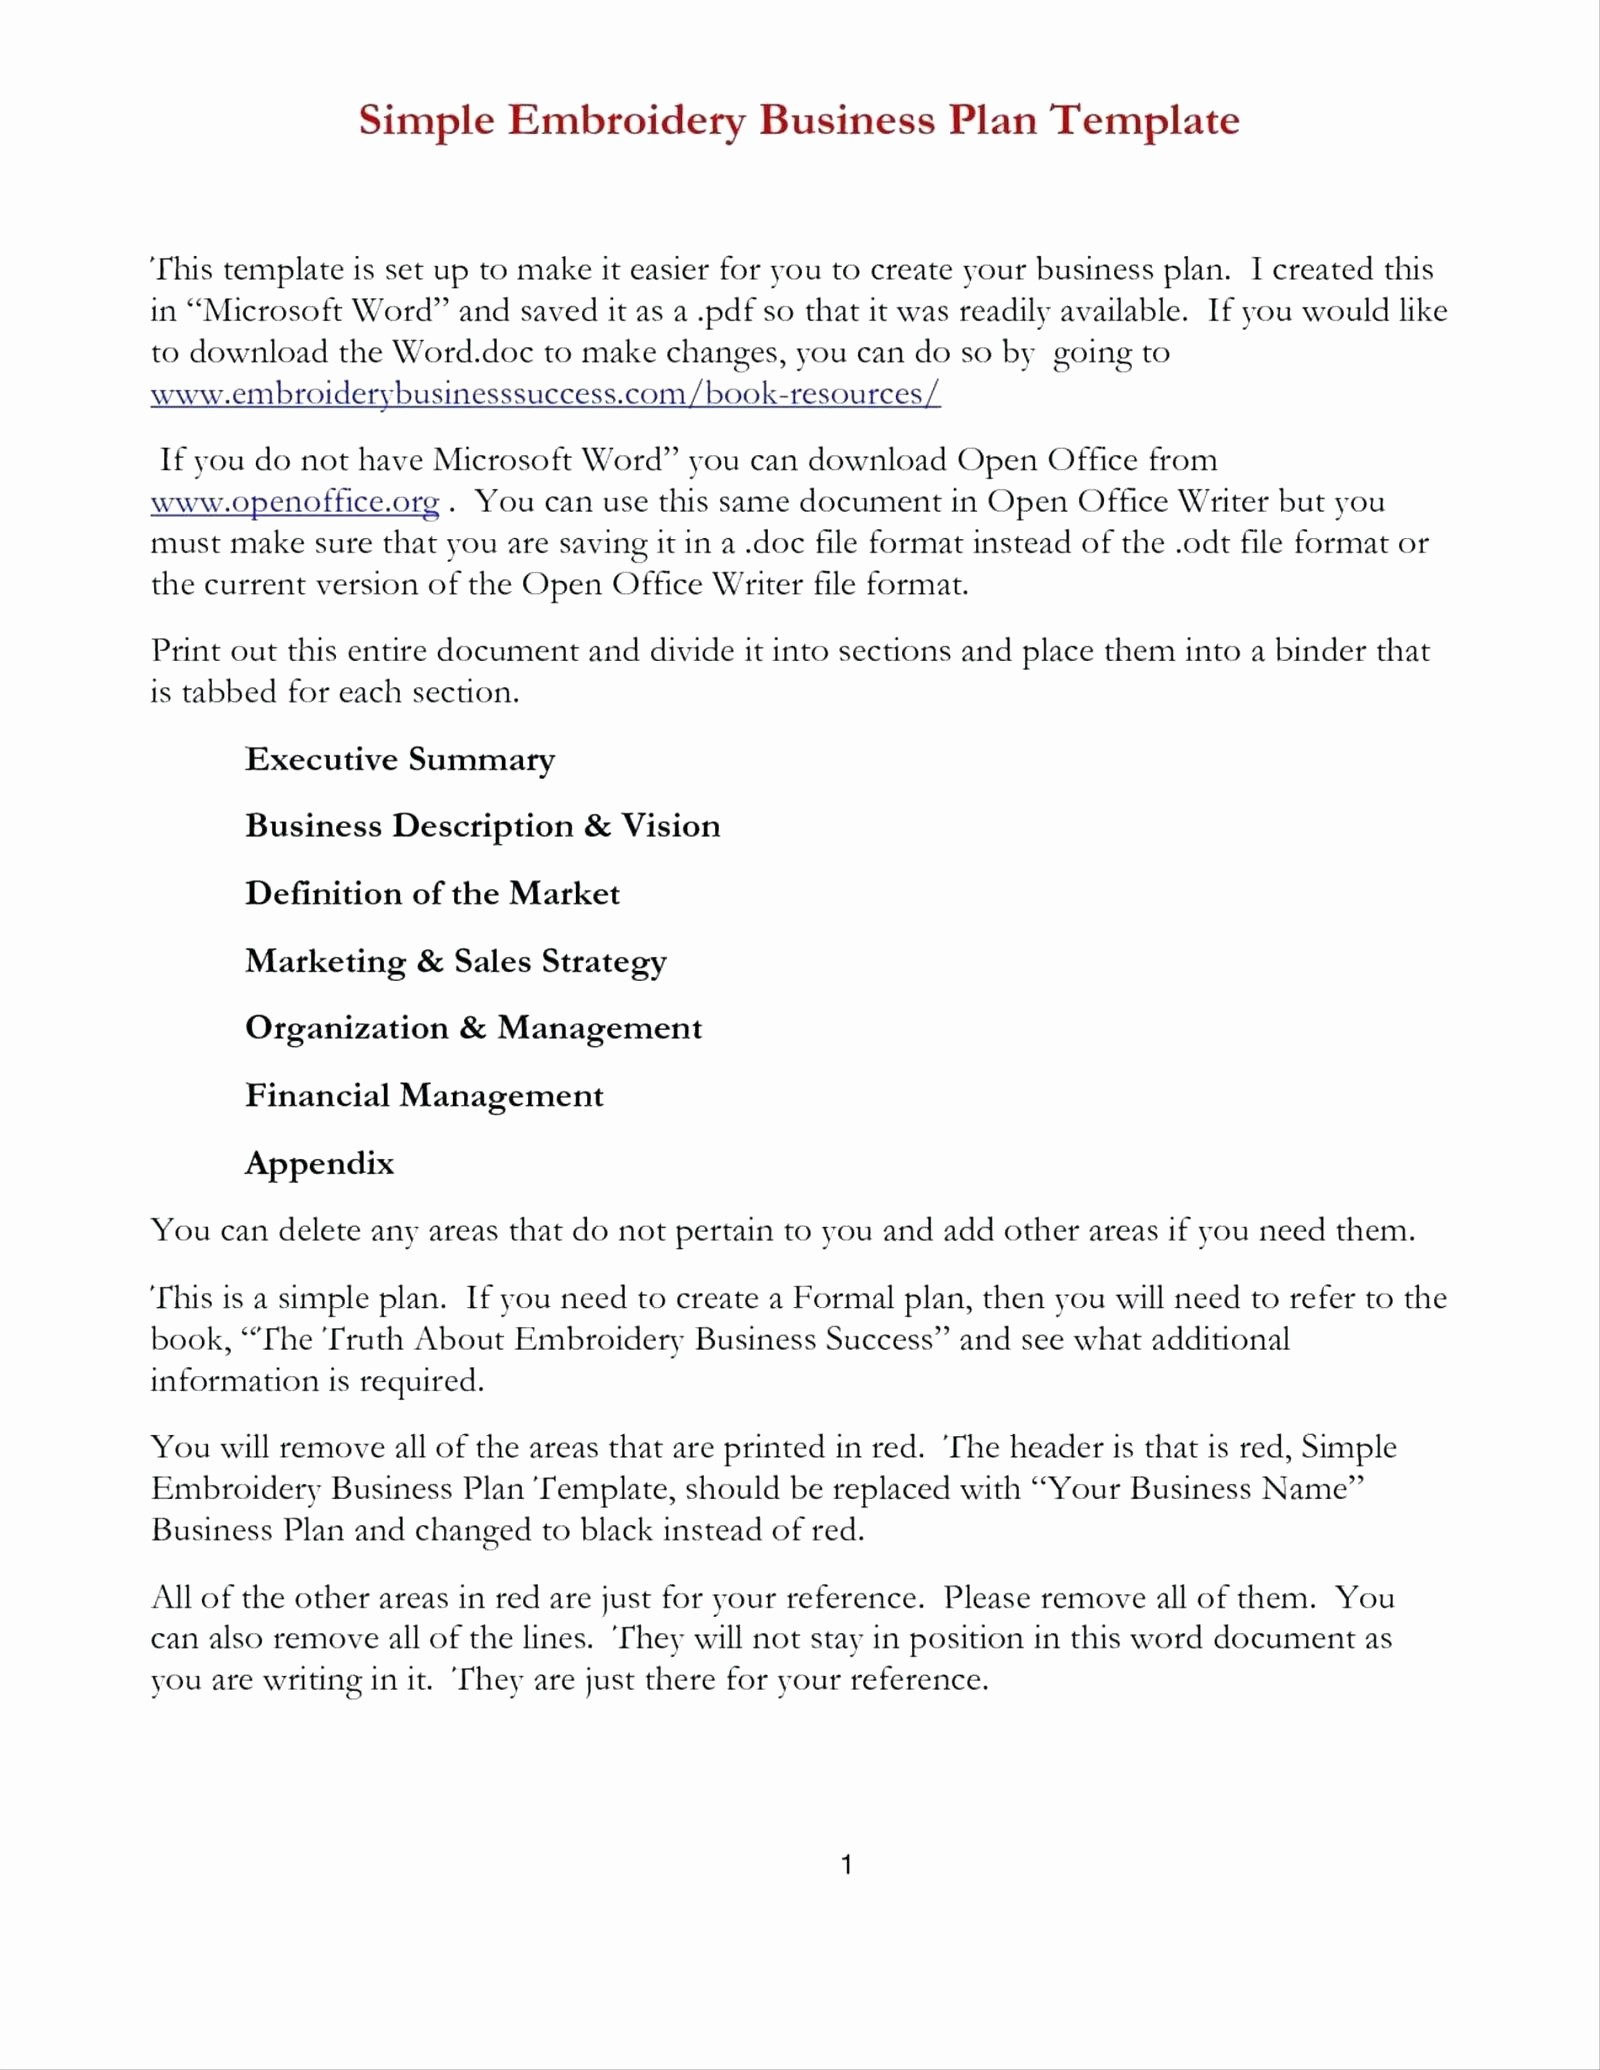 Ms Office Business Plan Template New Microsoft Fice Business Plan Template Fice Business